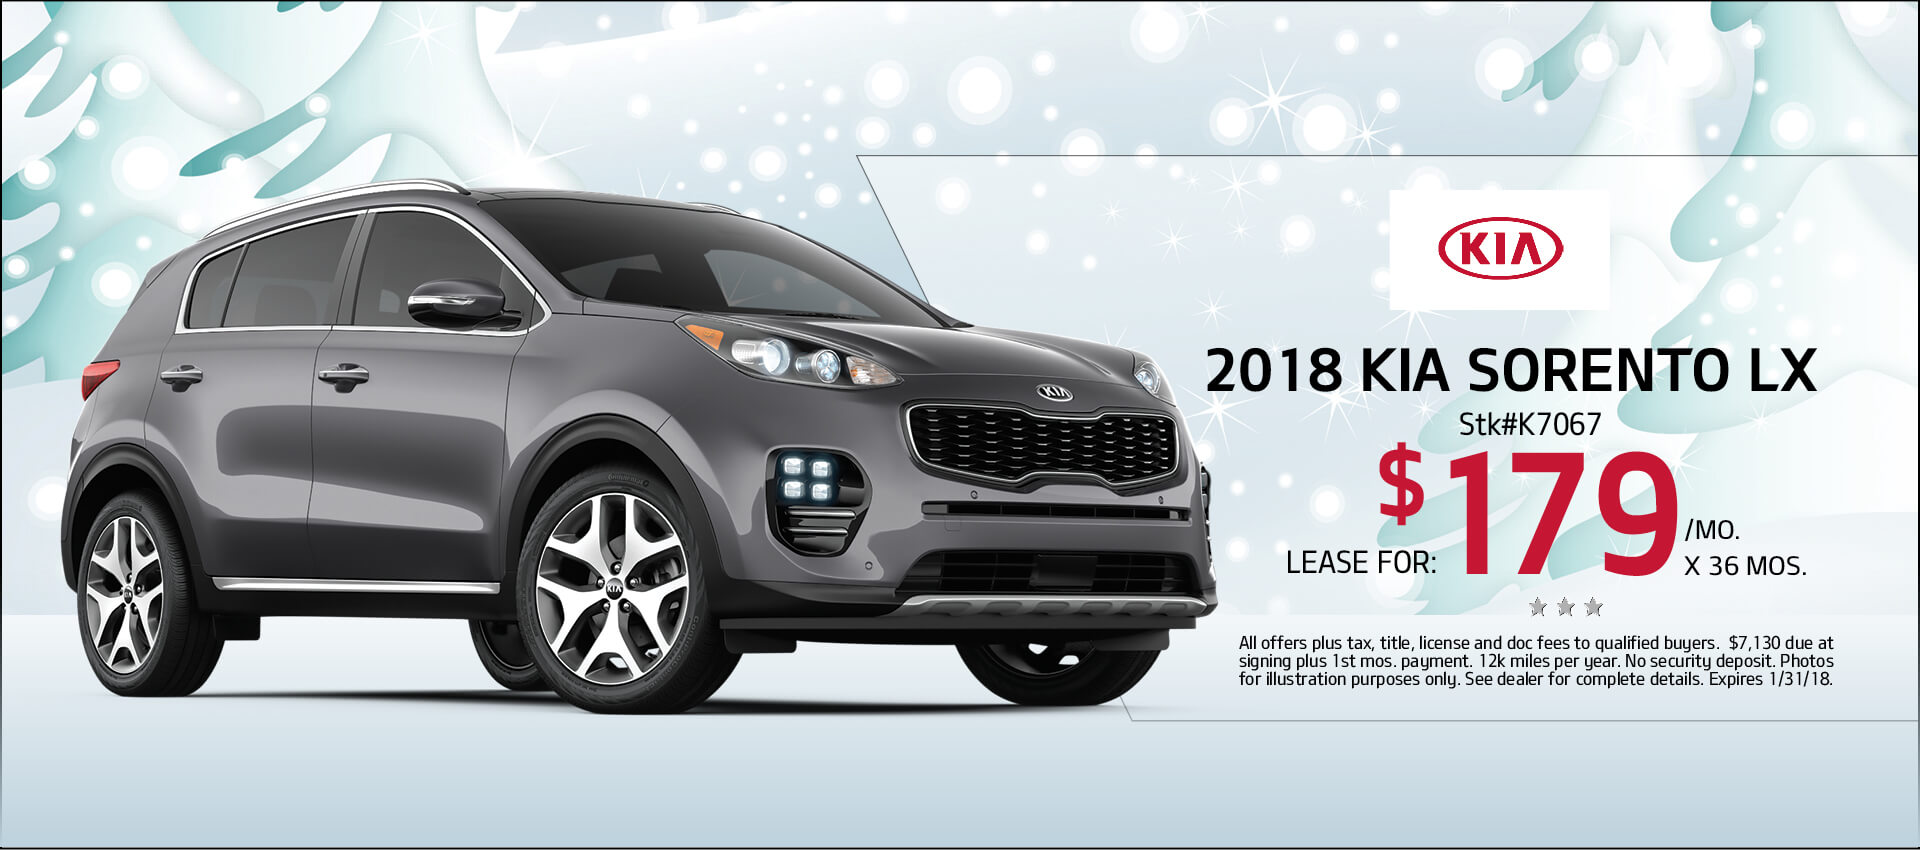 sale cars soul to for view a in image thumbnail larger kia click joliet